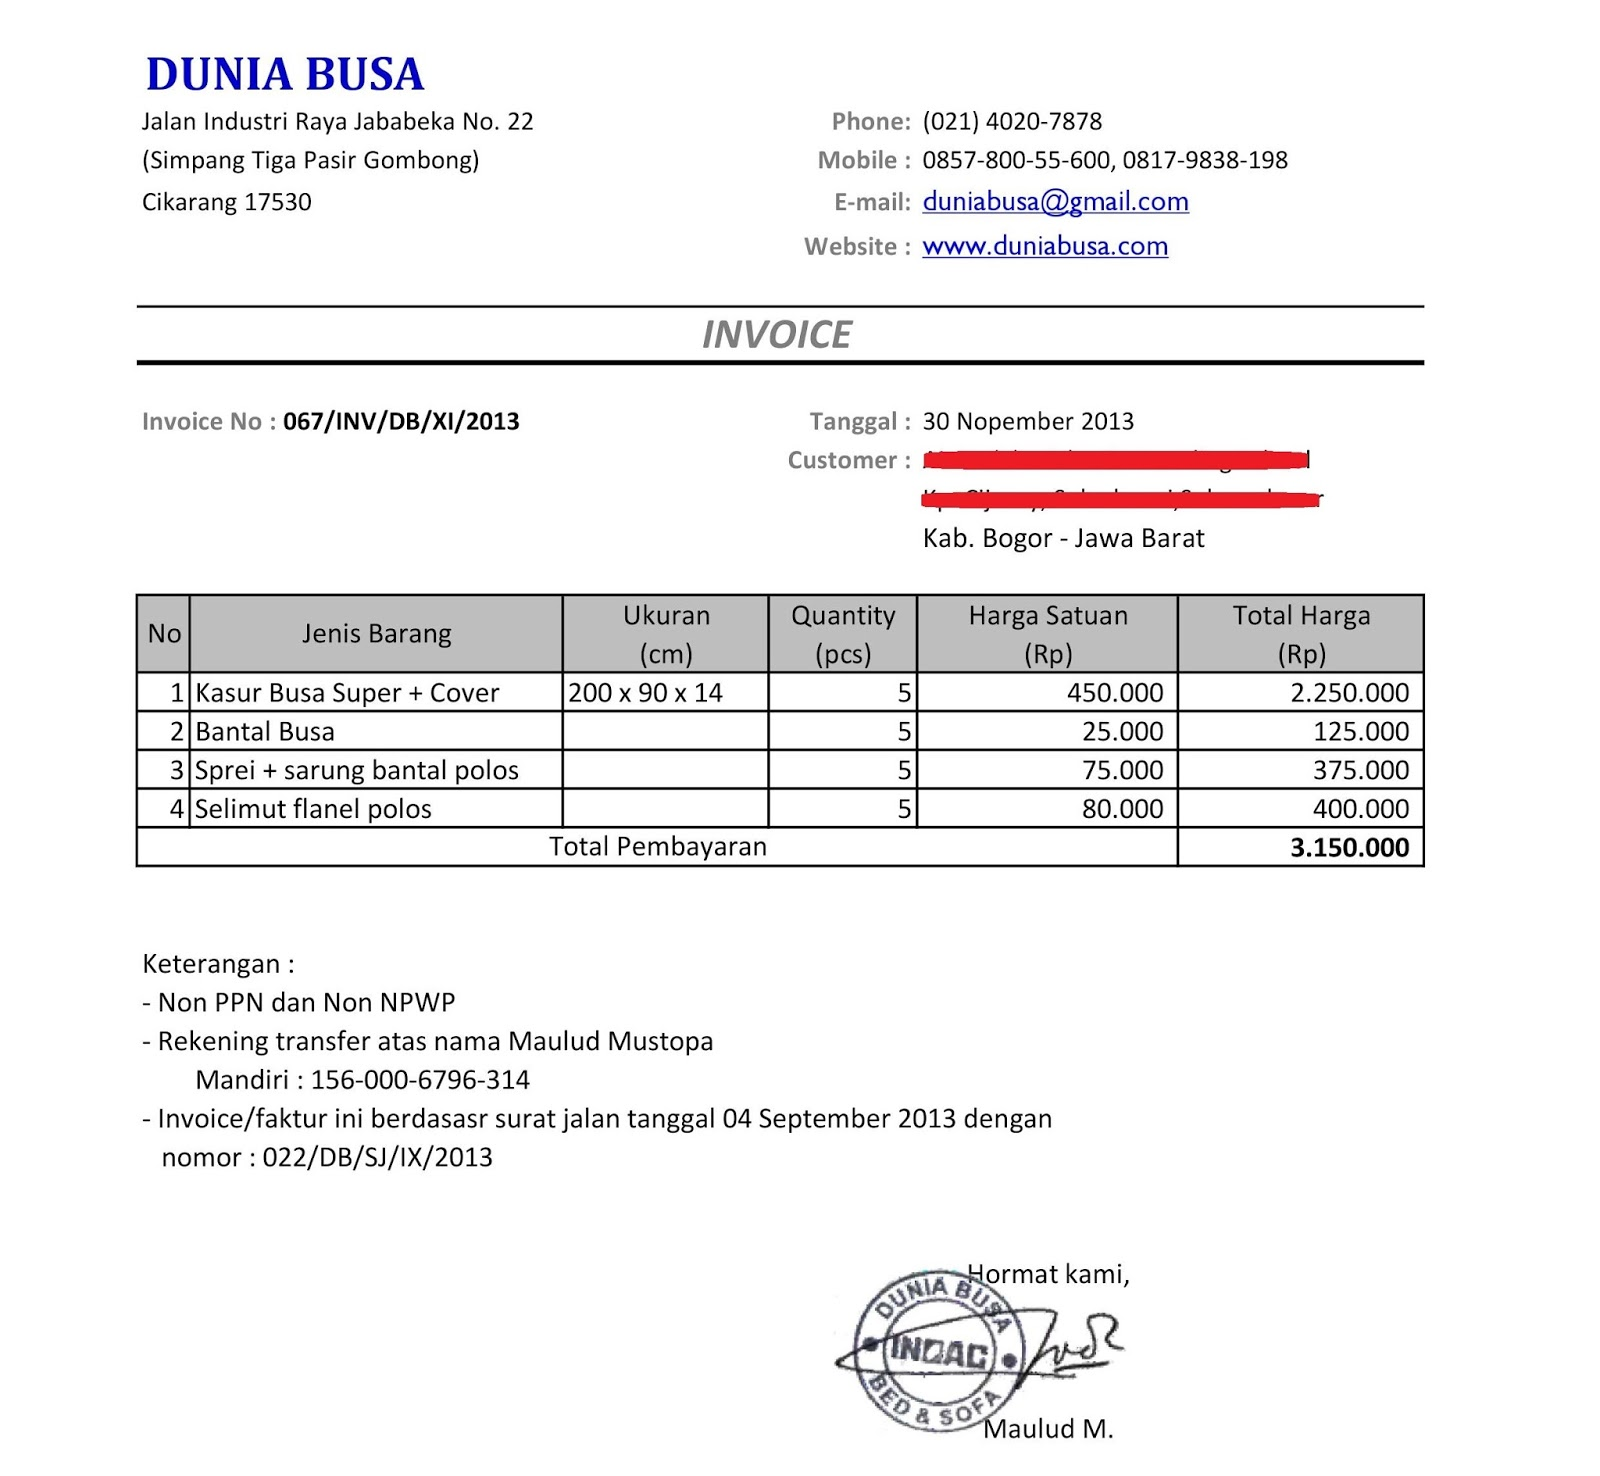 Centralasianshepherdus  Pleasing Free Invoice Online  Create Invoice Online  Invoice Template  With Glamorous Contoh Format Invoice Atau Surat Tagihan  Brankas Arsip  Free Invoice Online With Appealing Online Invoice Generator Also How To Send A Paypal Invoice In Addition Blank Invoice Pdf And Online Invoices As Well As Invoice Vs Msrp Additionally Dealer Invoice From Sklepco With Centralasianshepherdus  Glamorous Free Invoice Online  Create Invoice Online  Invoice Template  With Appealing Contoh Format Invoice Atau Surat Tagihan  Brankas Arsip  Free Invoice Online And Pleasing Online Invoice Generator Also How To Send A Paypal Invoice In Addition Blank Invoice Pdf From Sklepco